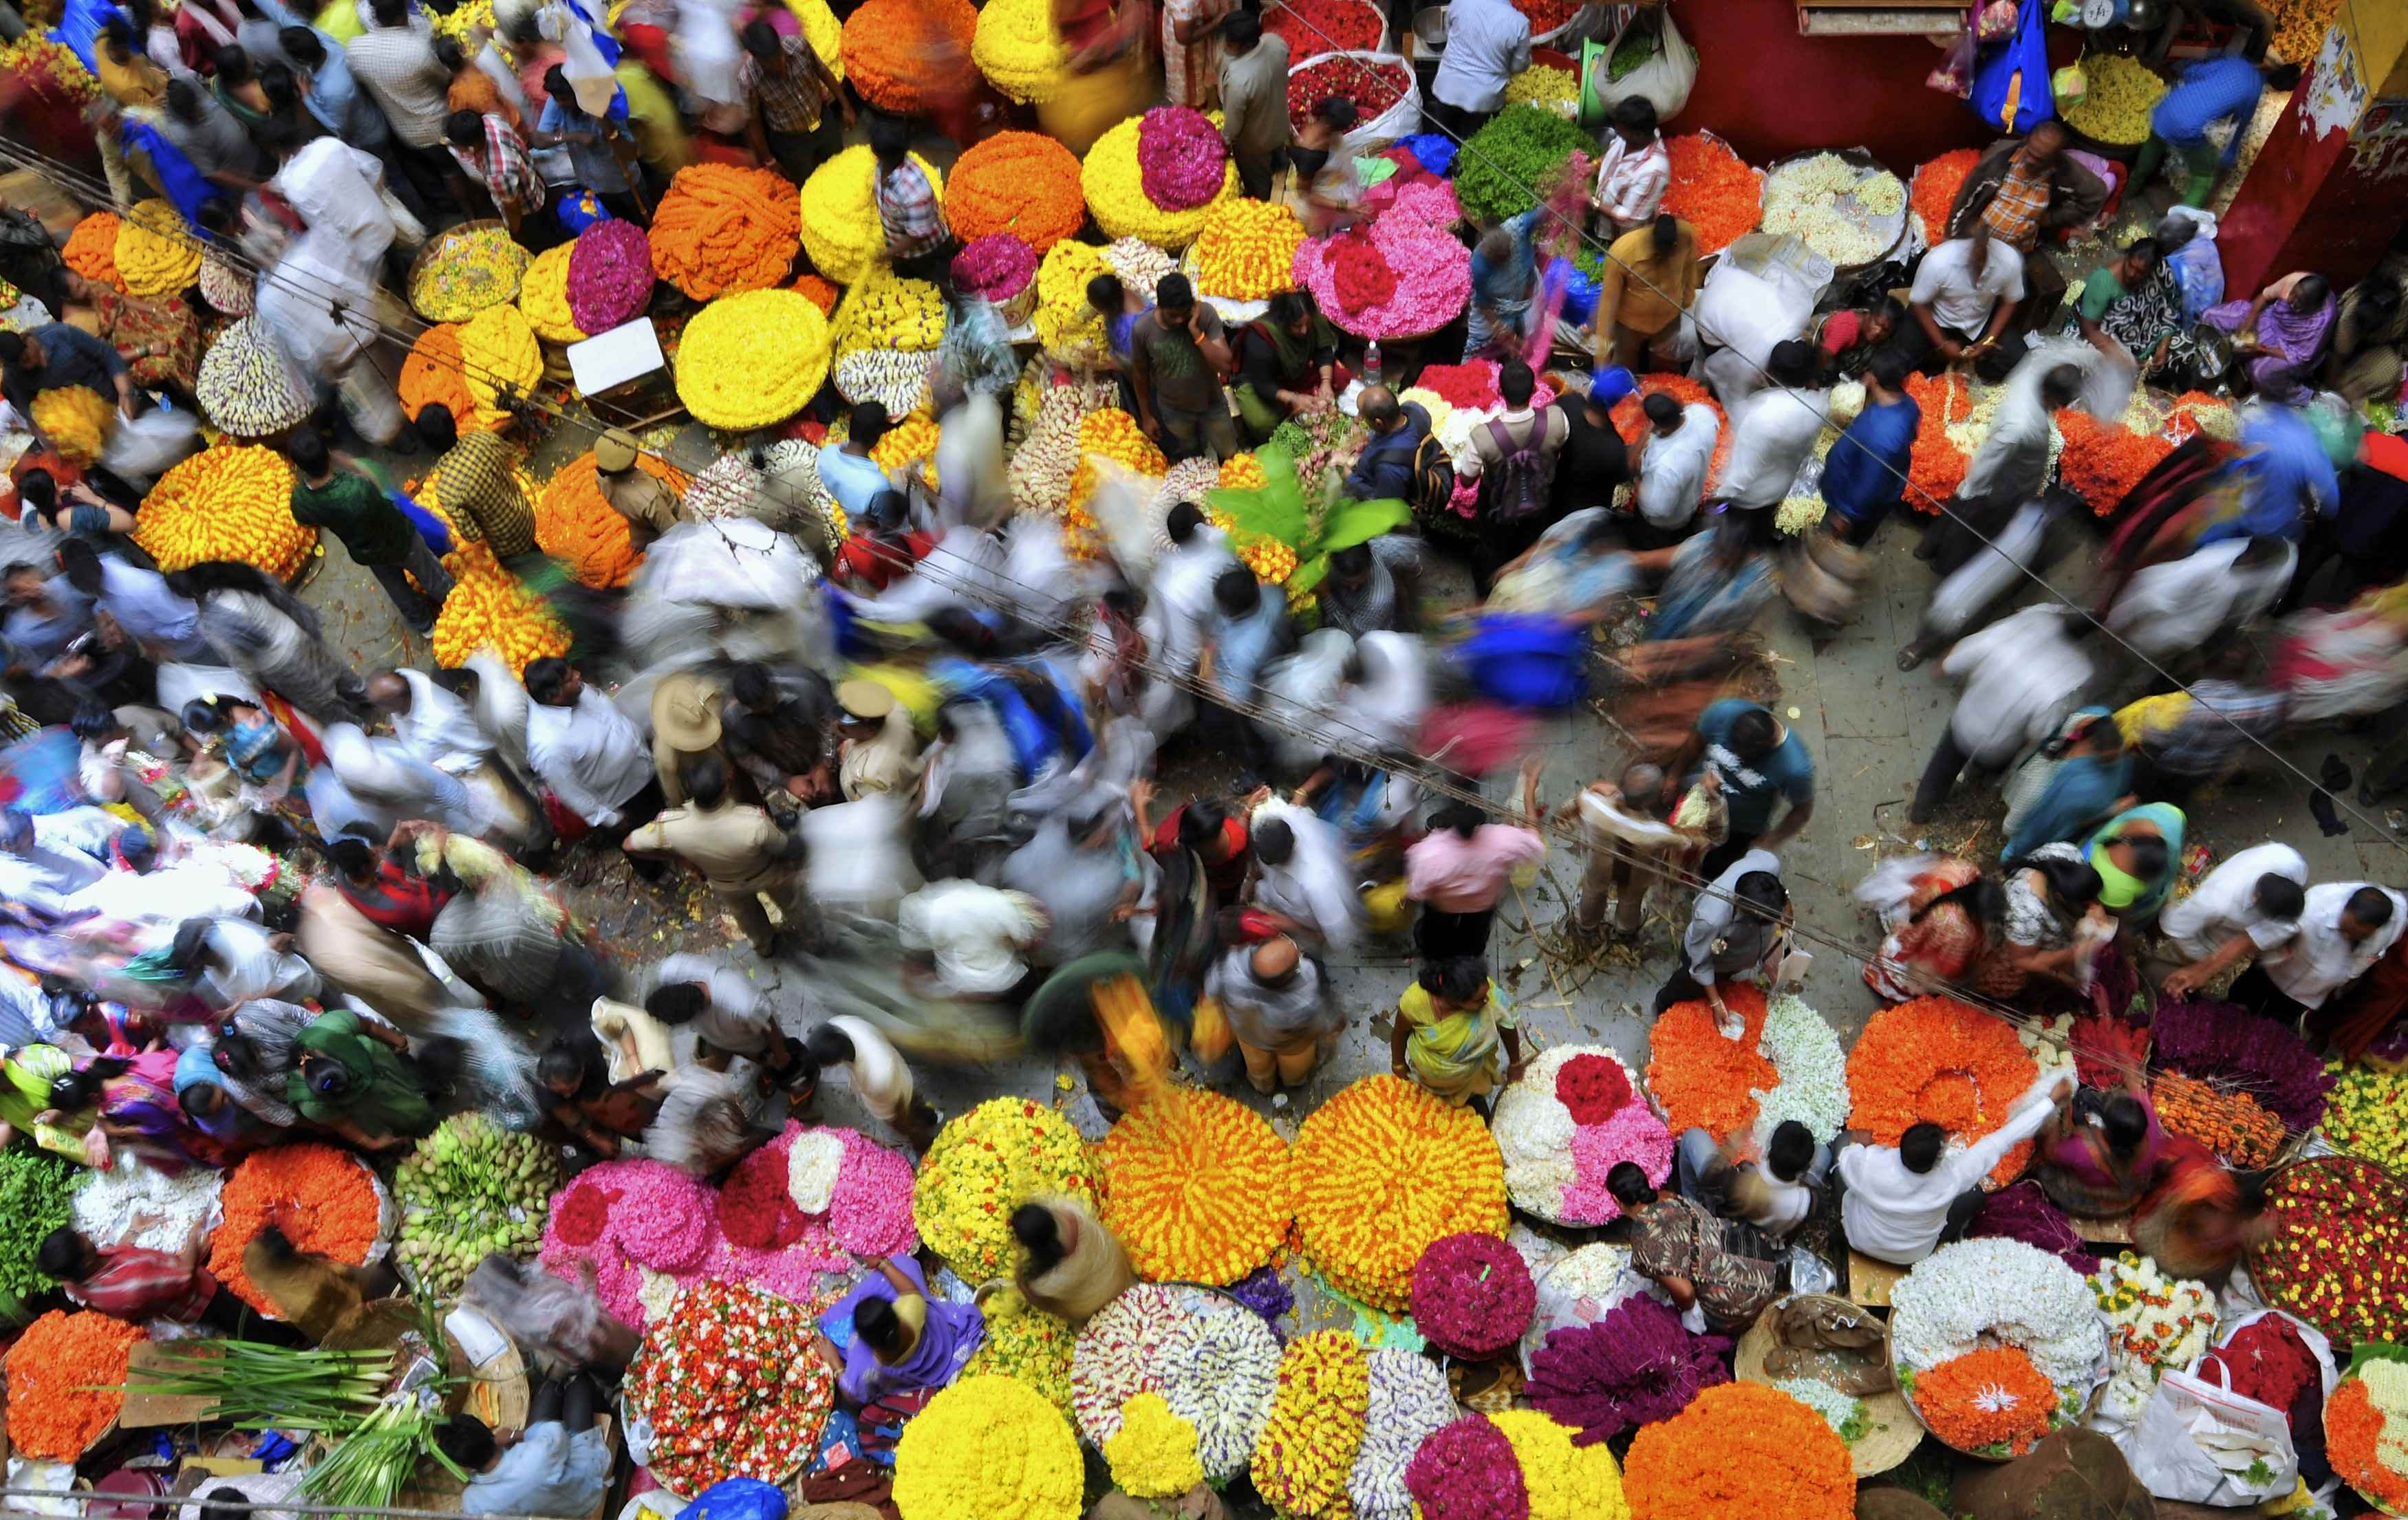 Aug. 7, 2014. People crowd at a flower market in the southern Indian city of Bangalore.